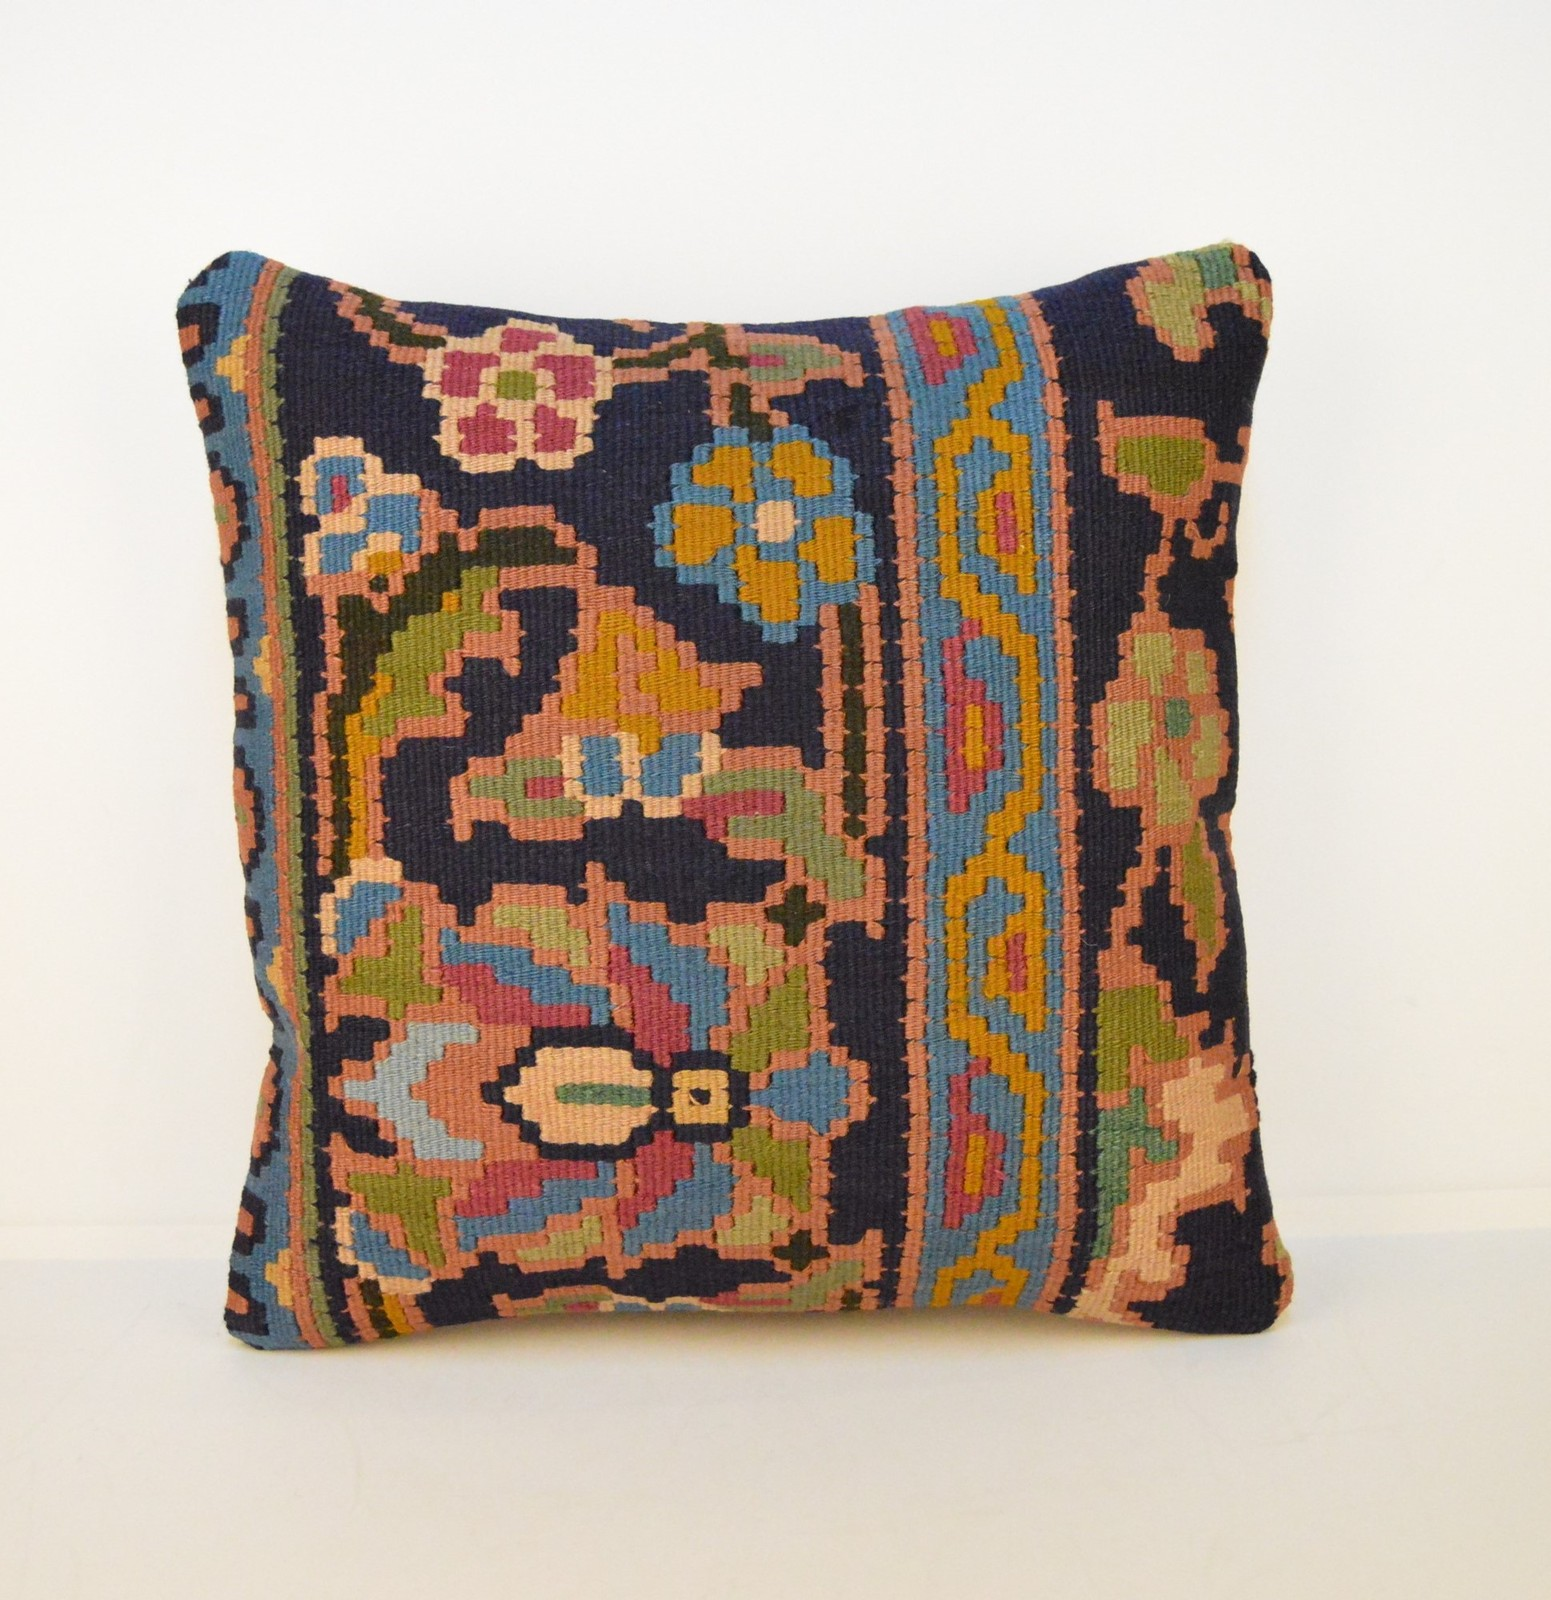 Decorative Pillow Wraps : Decorative Pillow Covers rug pillows covers by kilim pillow on arastabazaar - Pillows